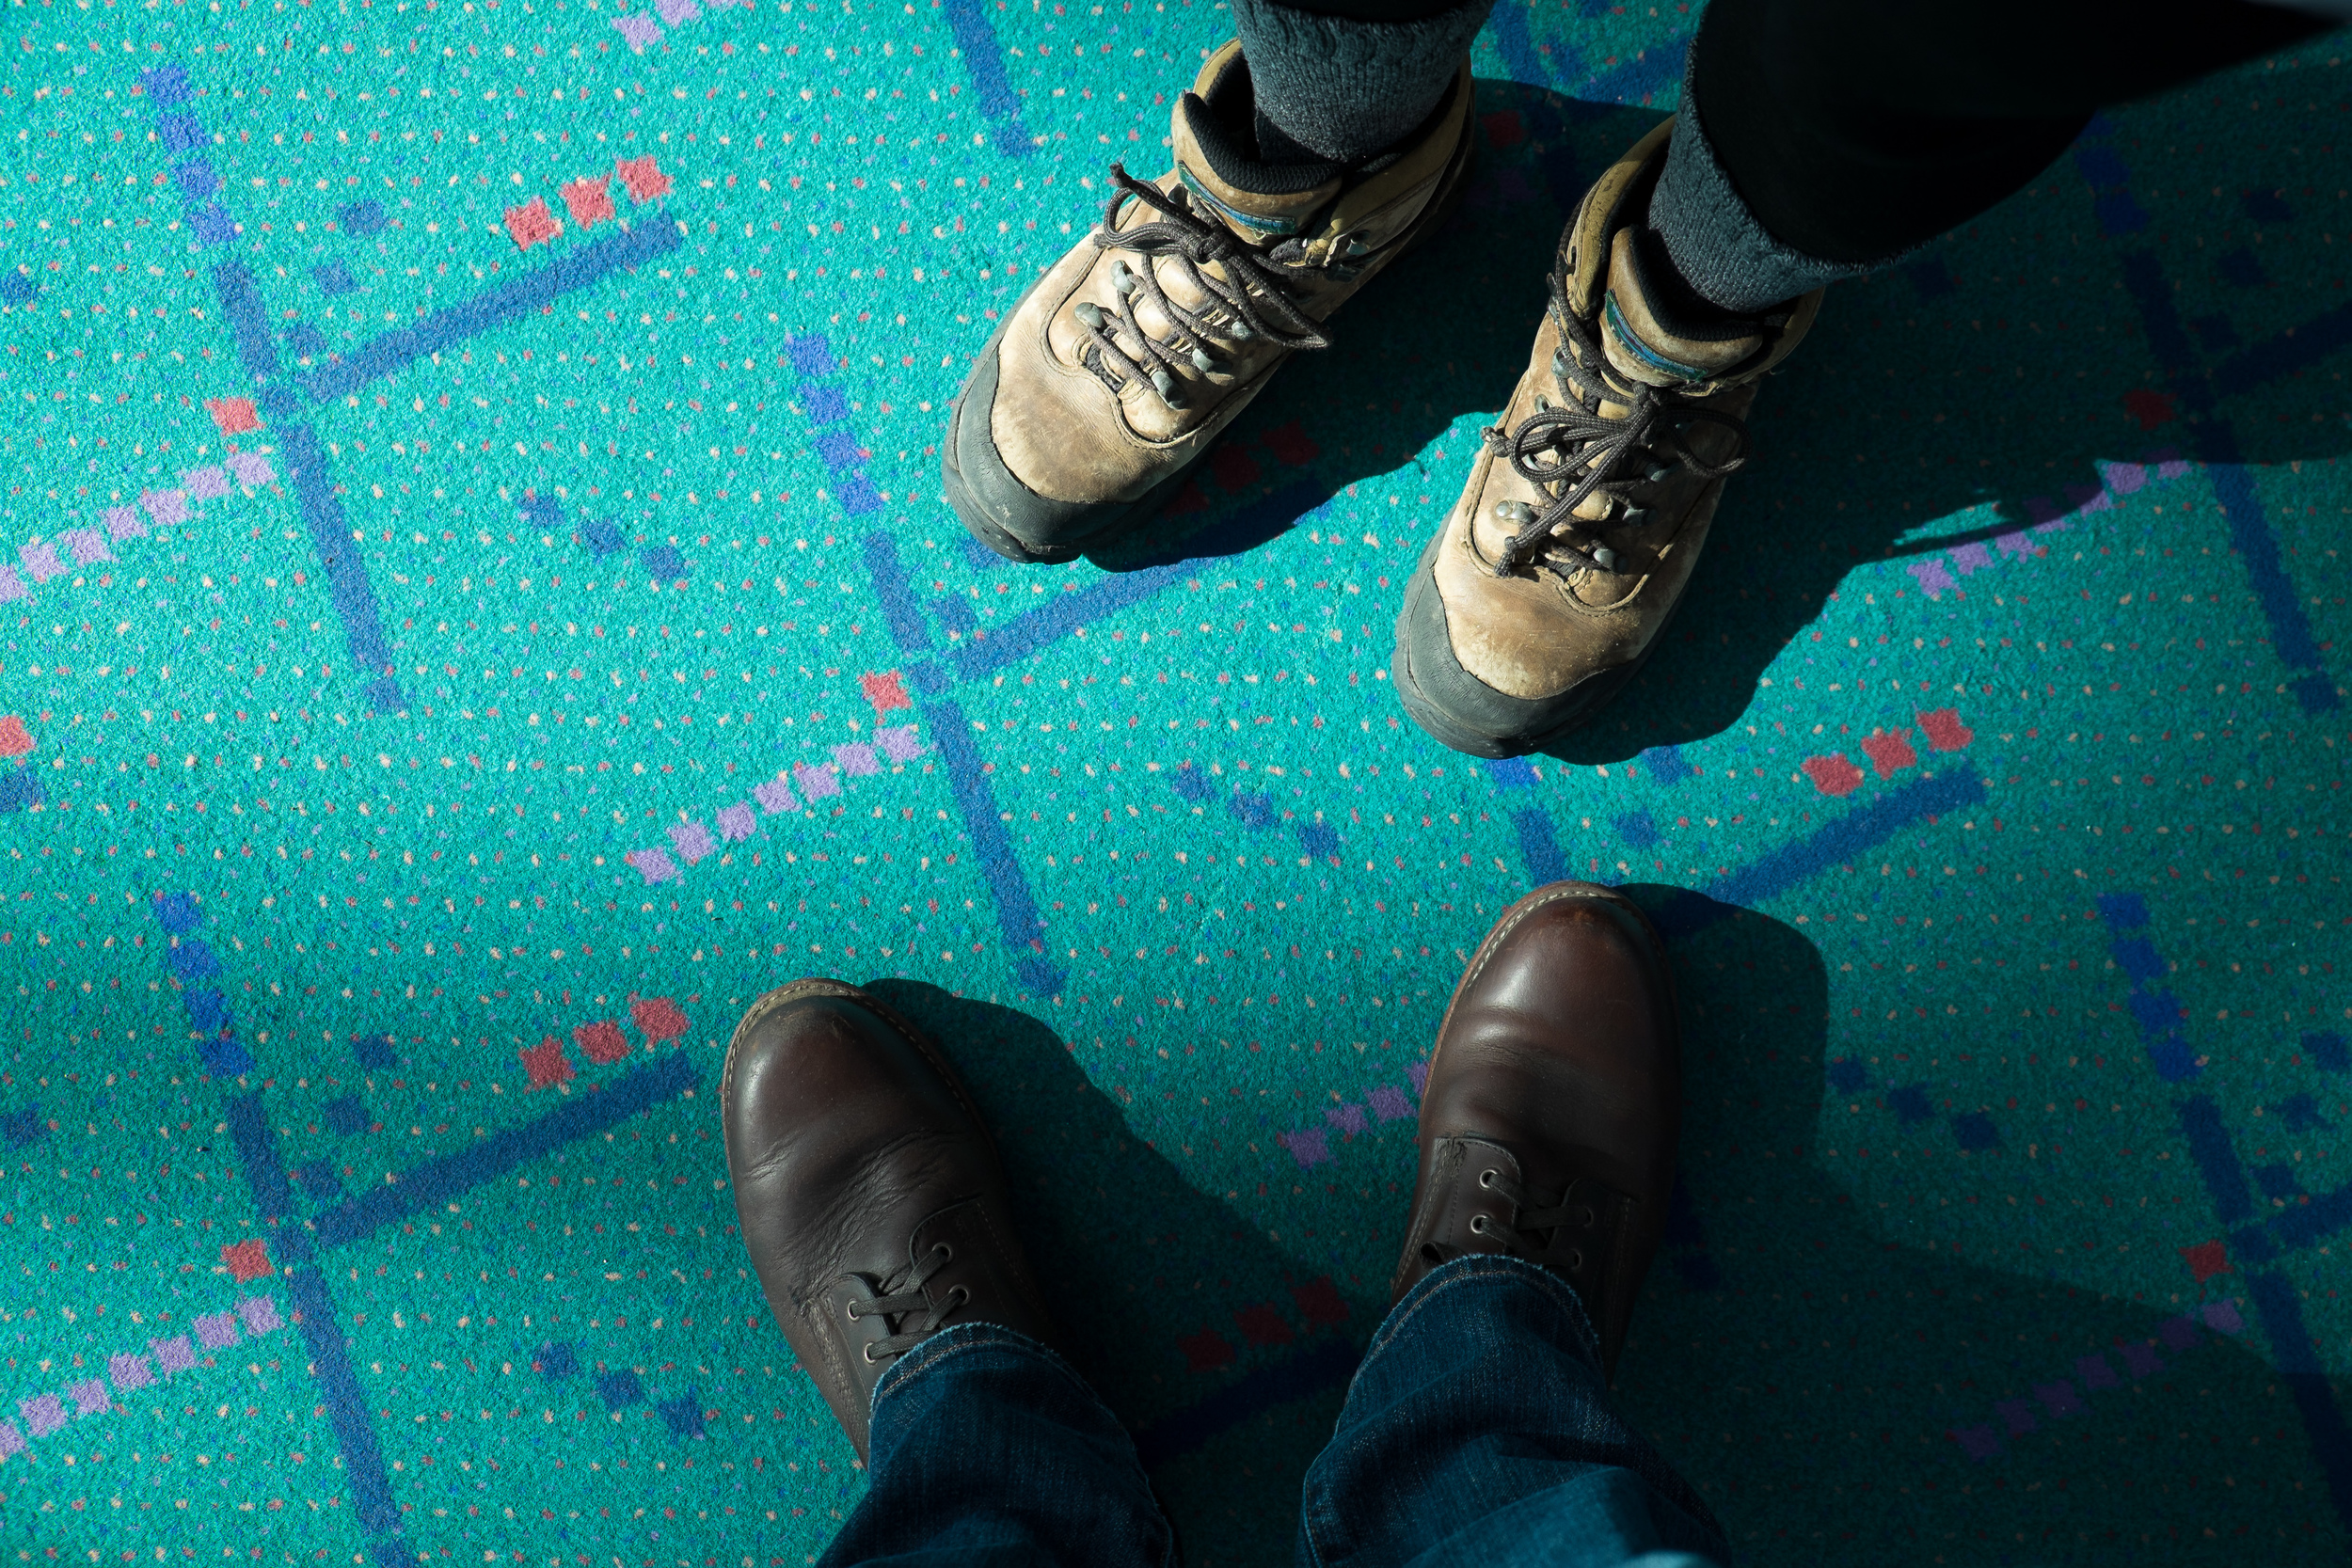 The infamous PDX carpet. Hopefully they don't replace all of it in the remodel.